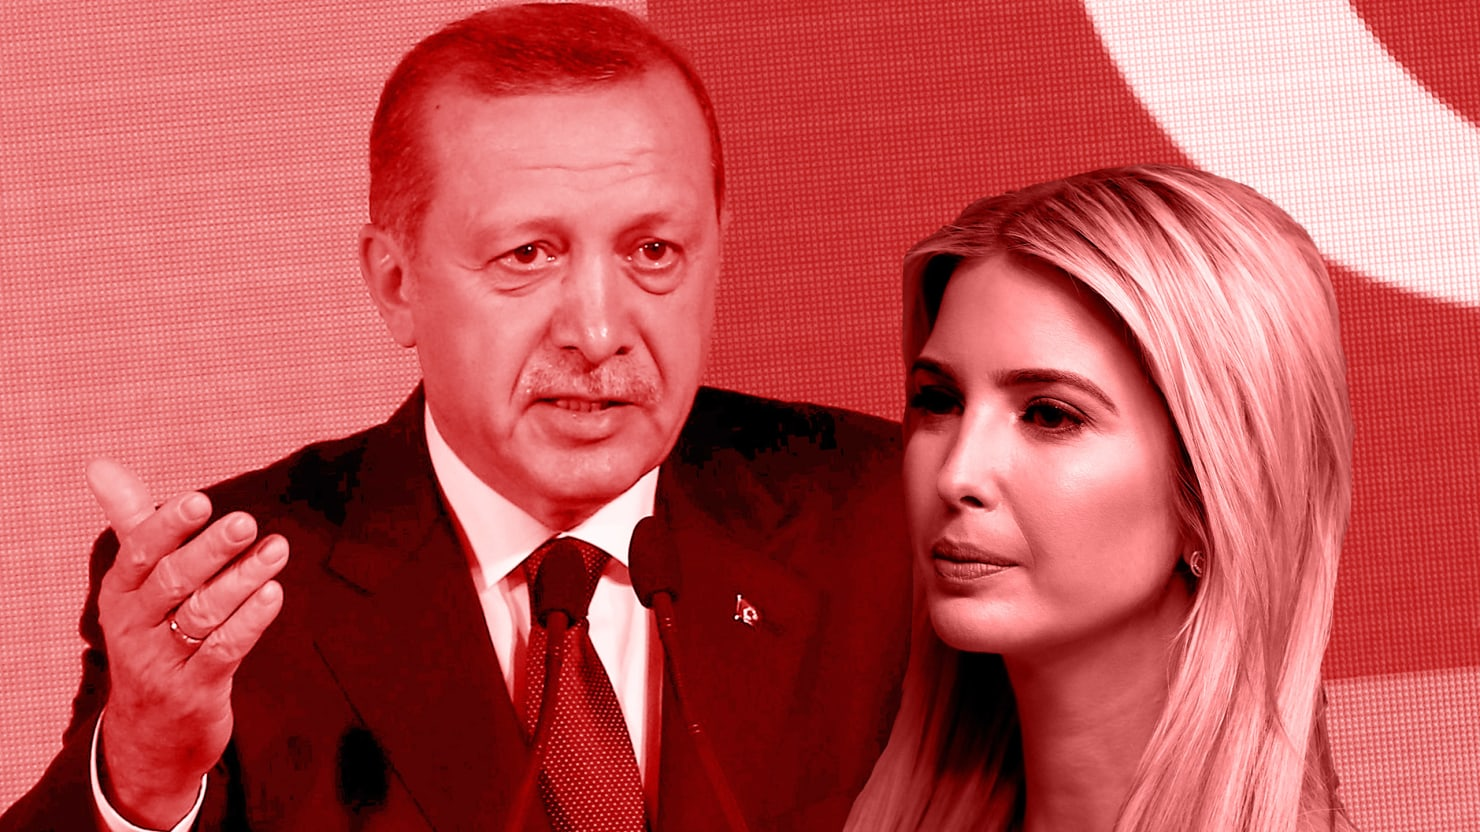 President Trump Congratulated Turkish President Erdogan On His Victory But Hes Not The First Trump To Give Erdogan Thanks